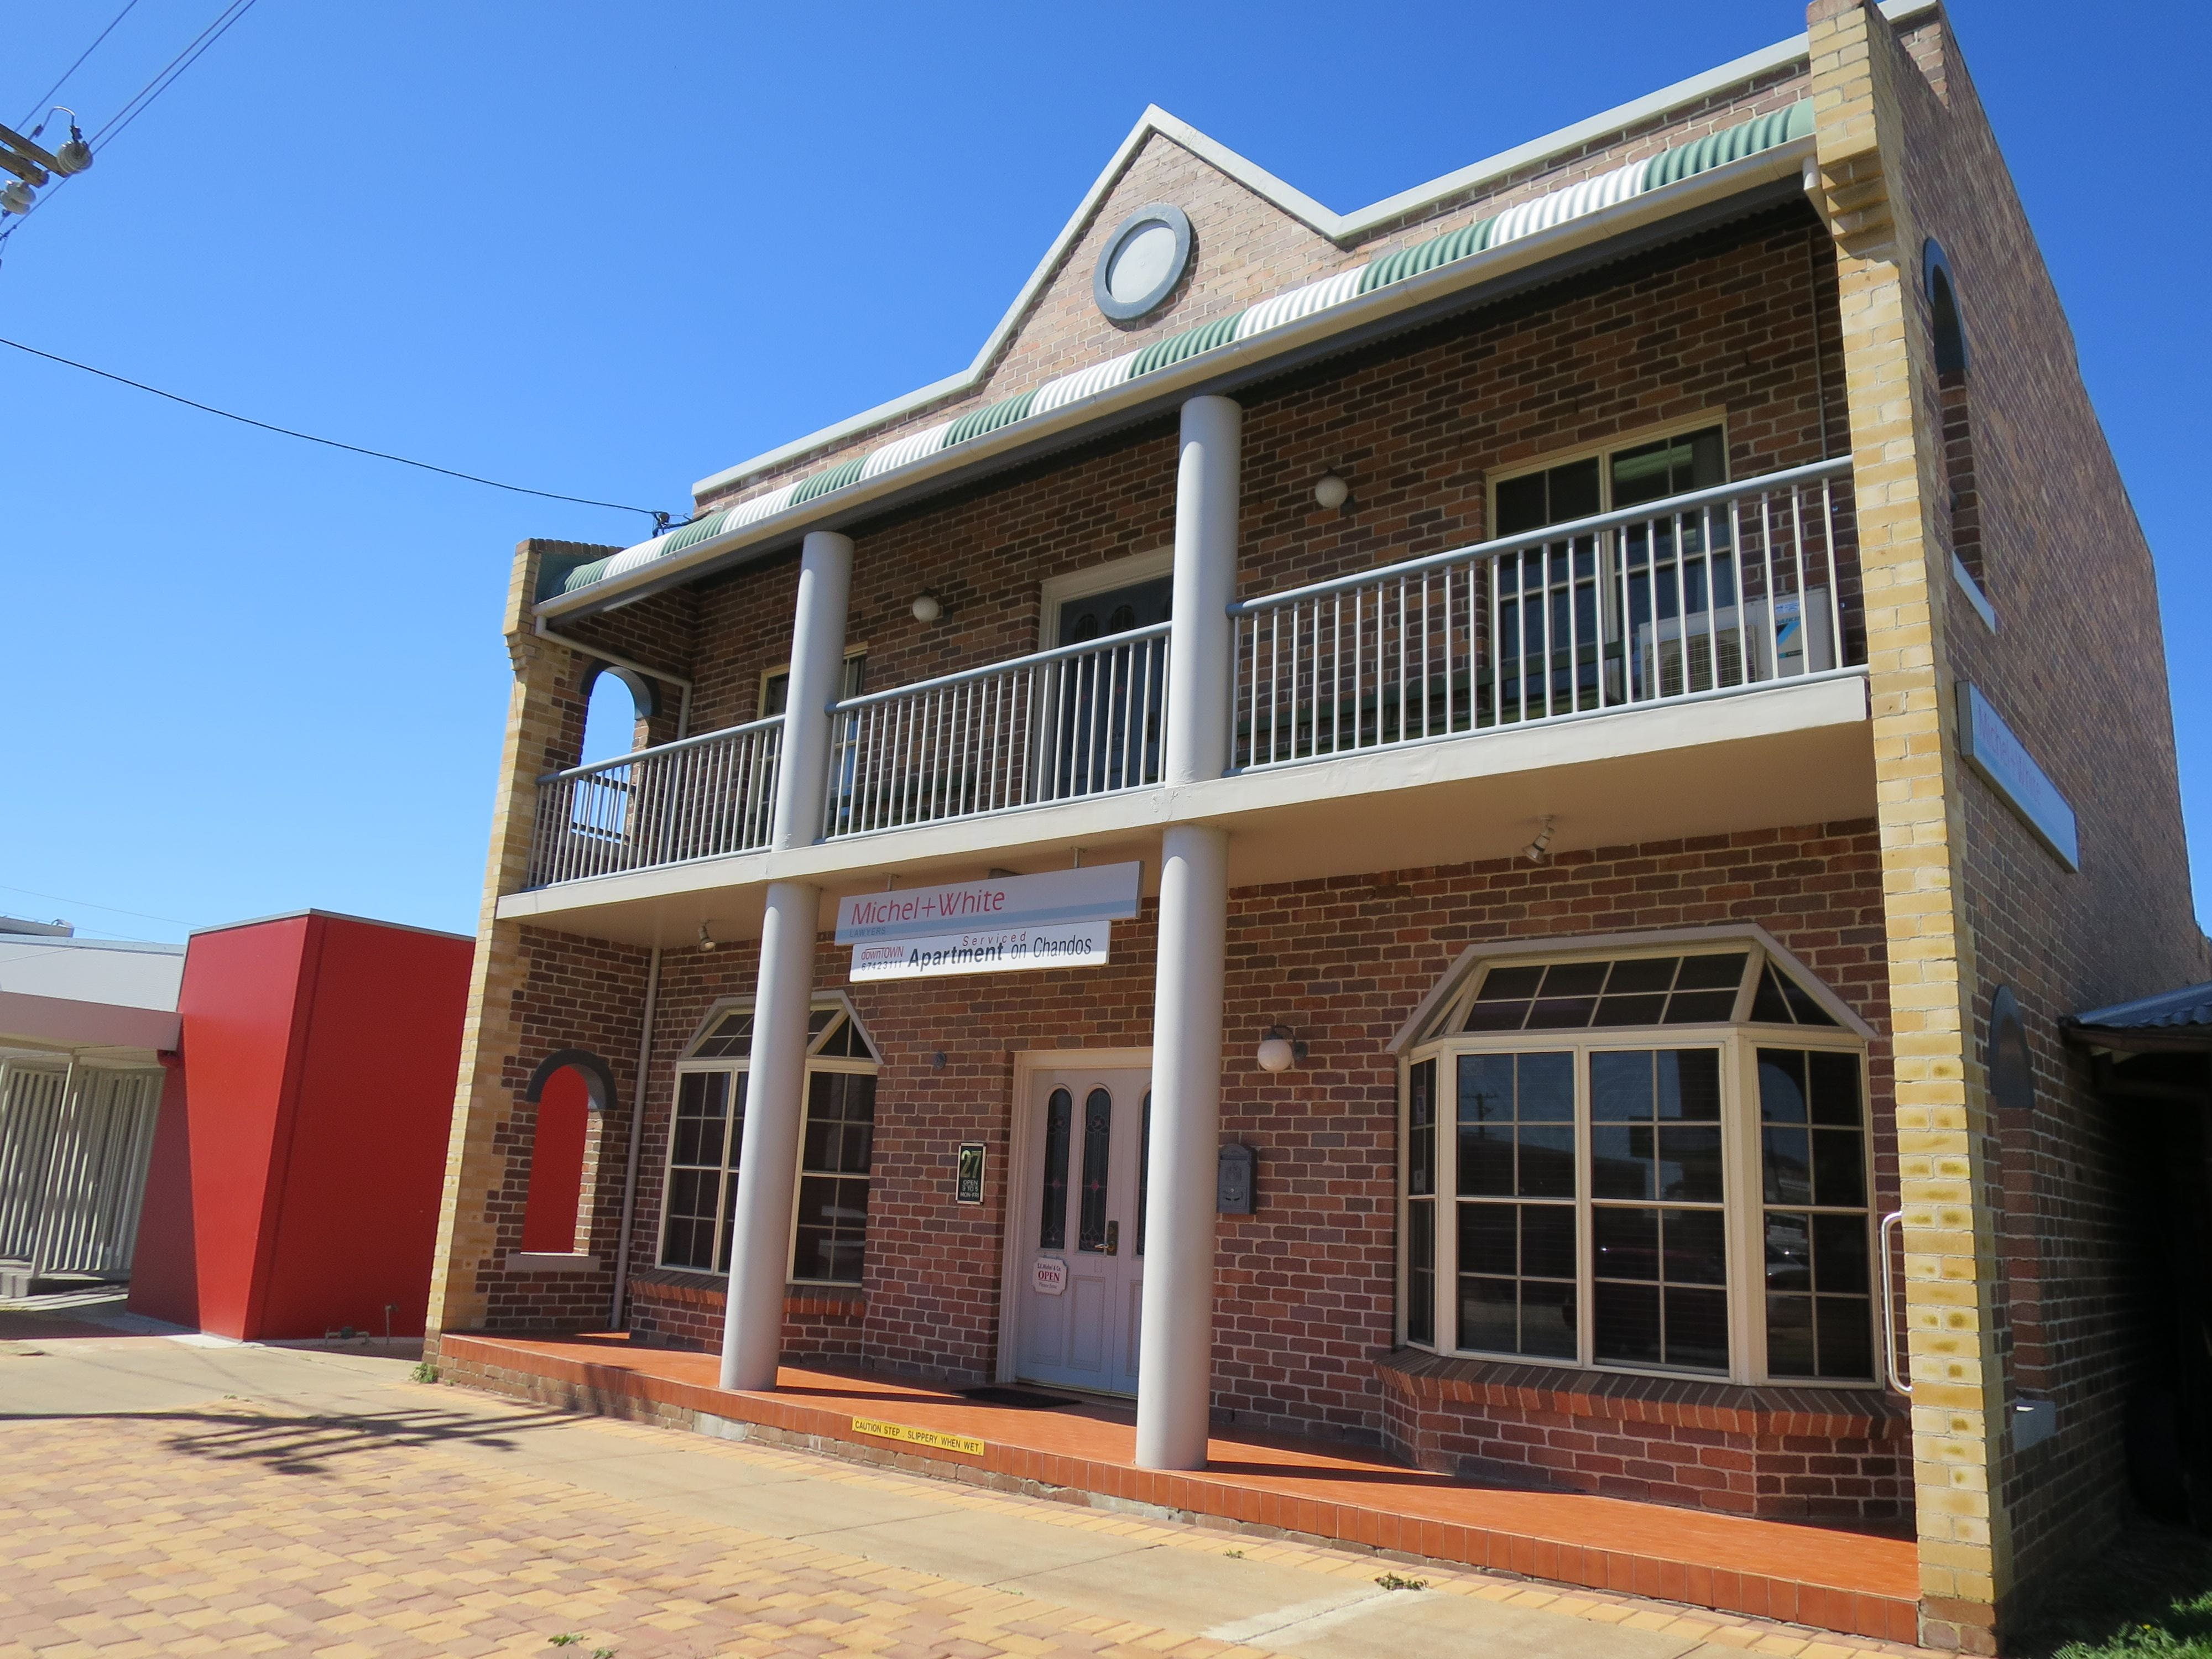 Downtown Apartment on Chandos - Lennox Head Accommodation